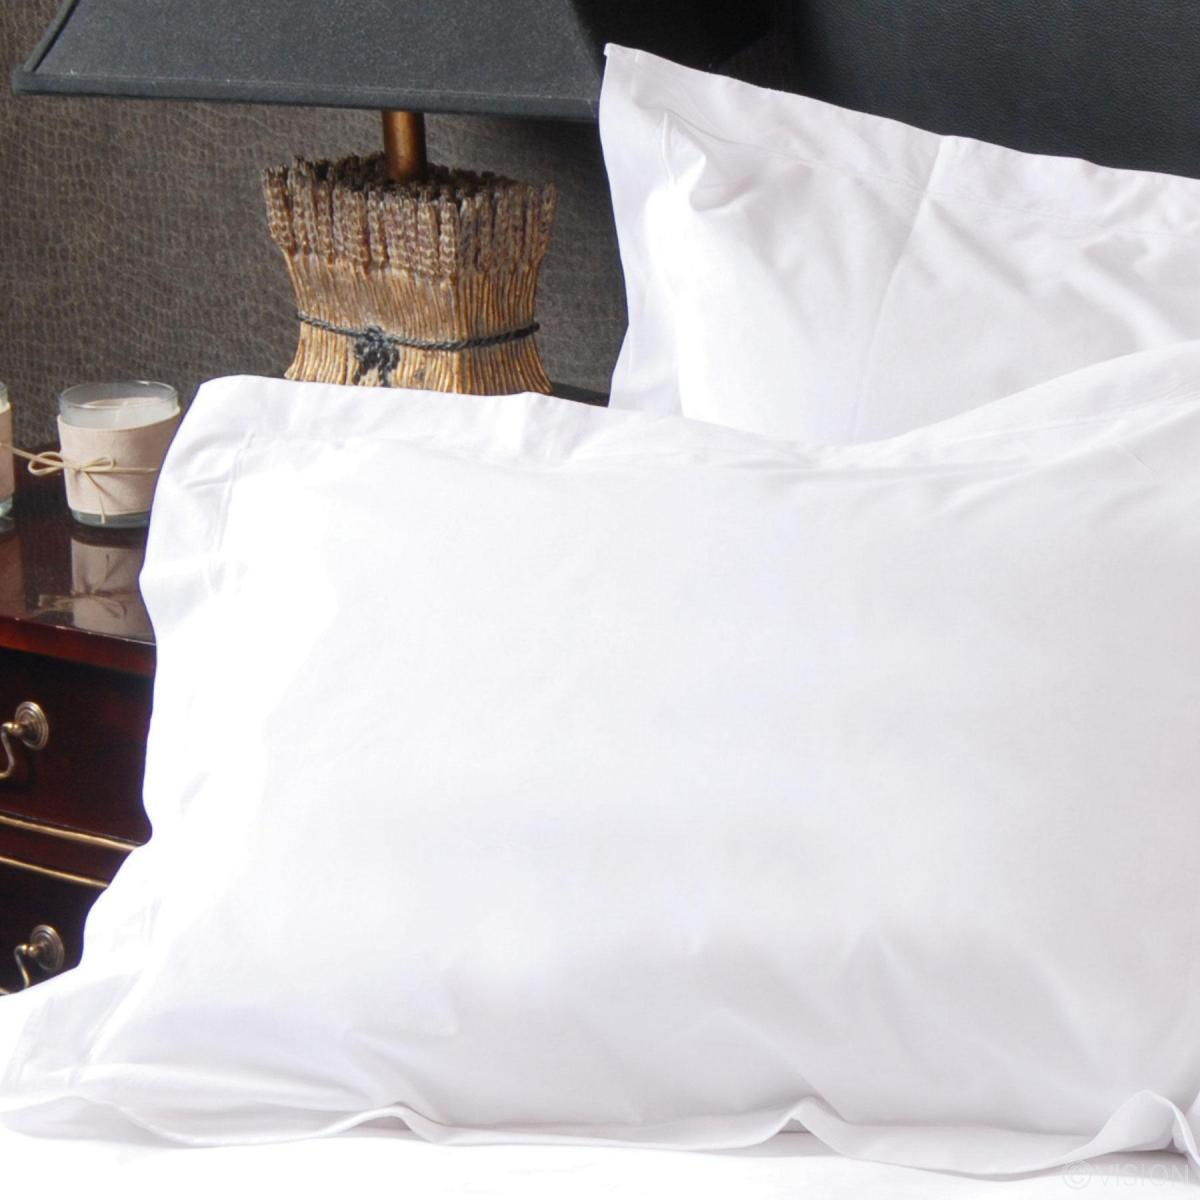 Monte cristo percale pillowcase